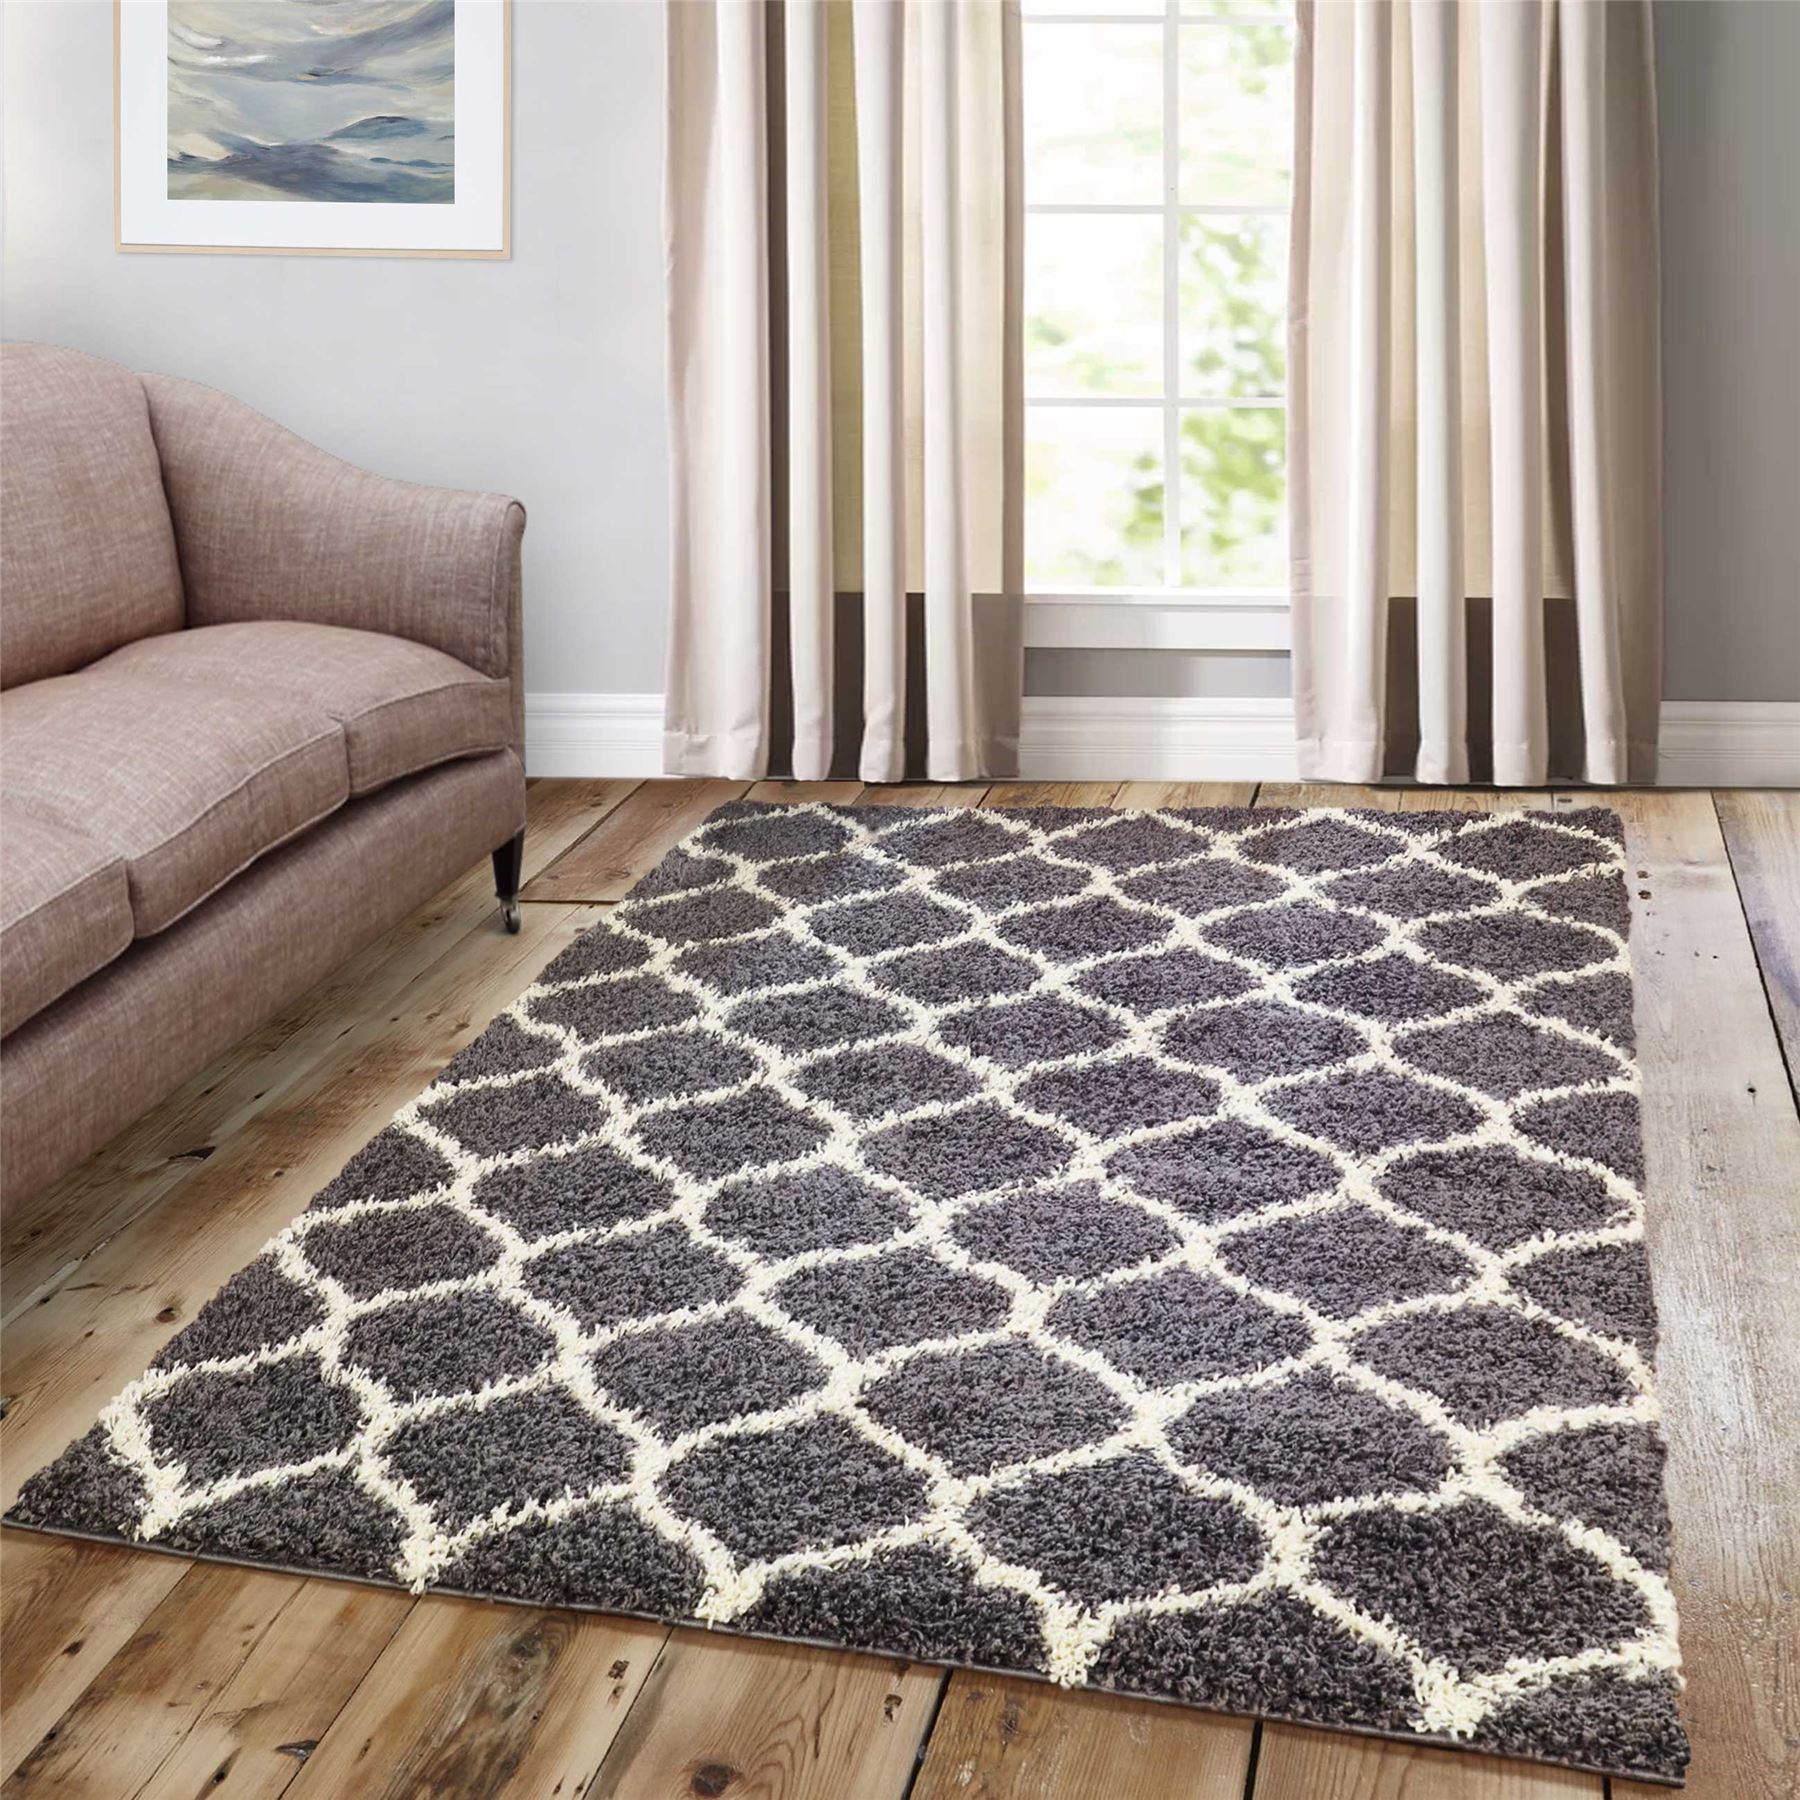 Large Thick Geometric Shag Rugs Assorted Colours Luxury Living Room Area Carpets   eBay